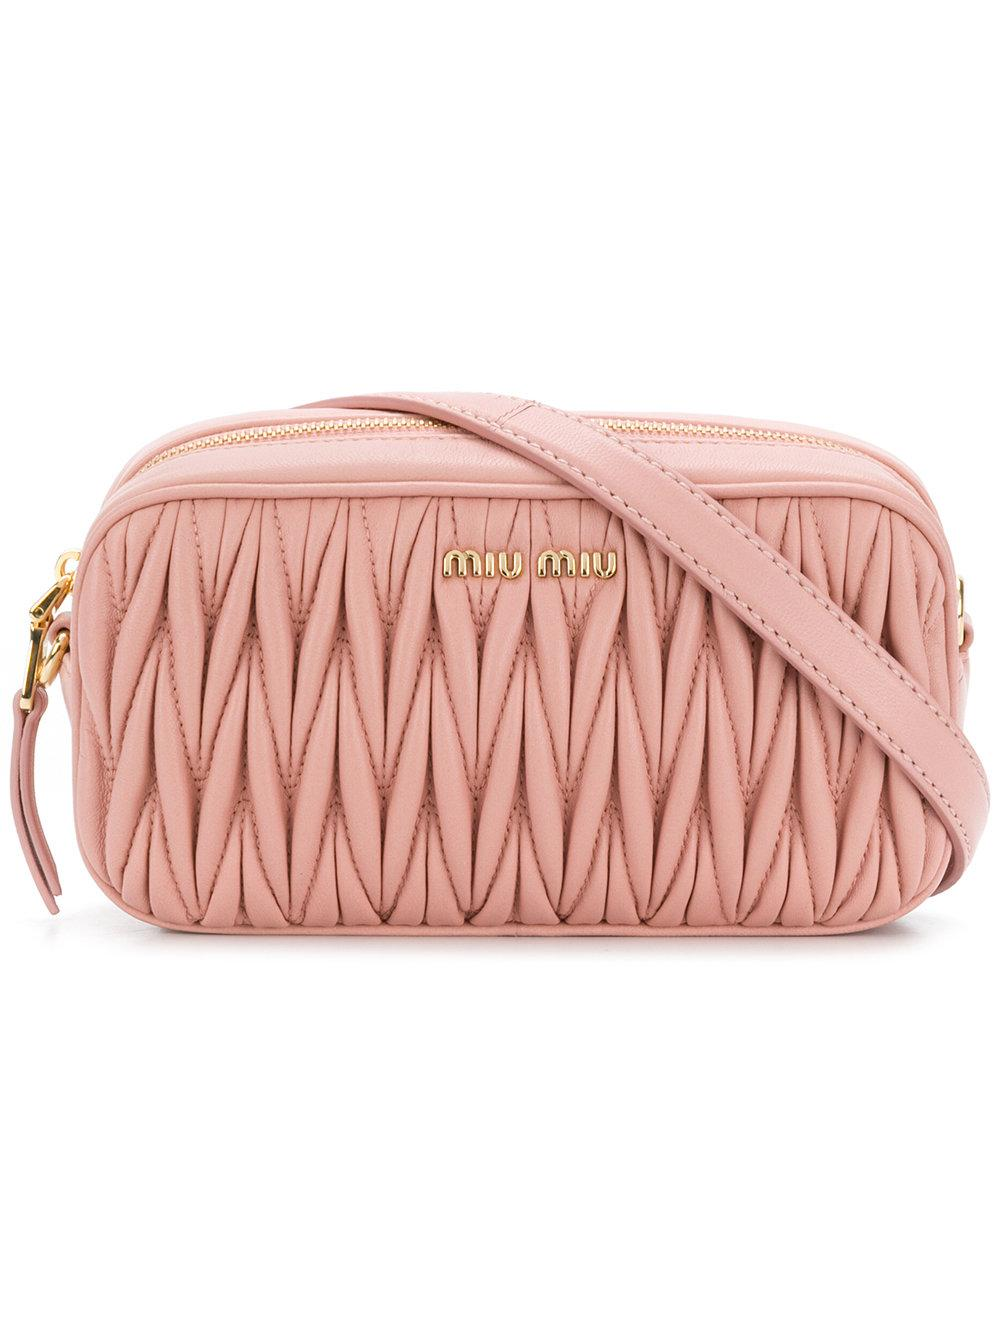 d9f565b68d6 Miu Miu MatelassÉ Belt Bag In Pink